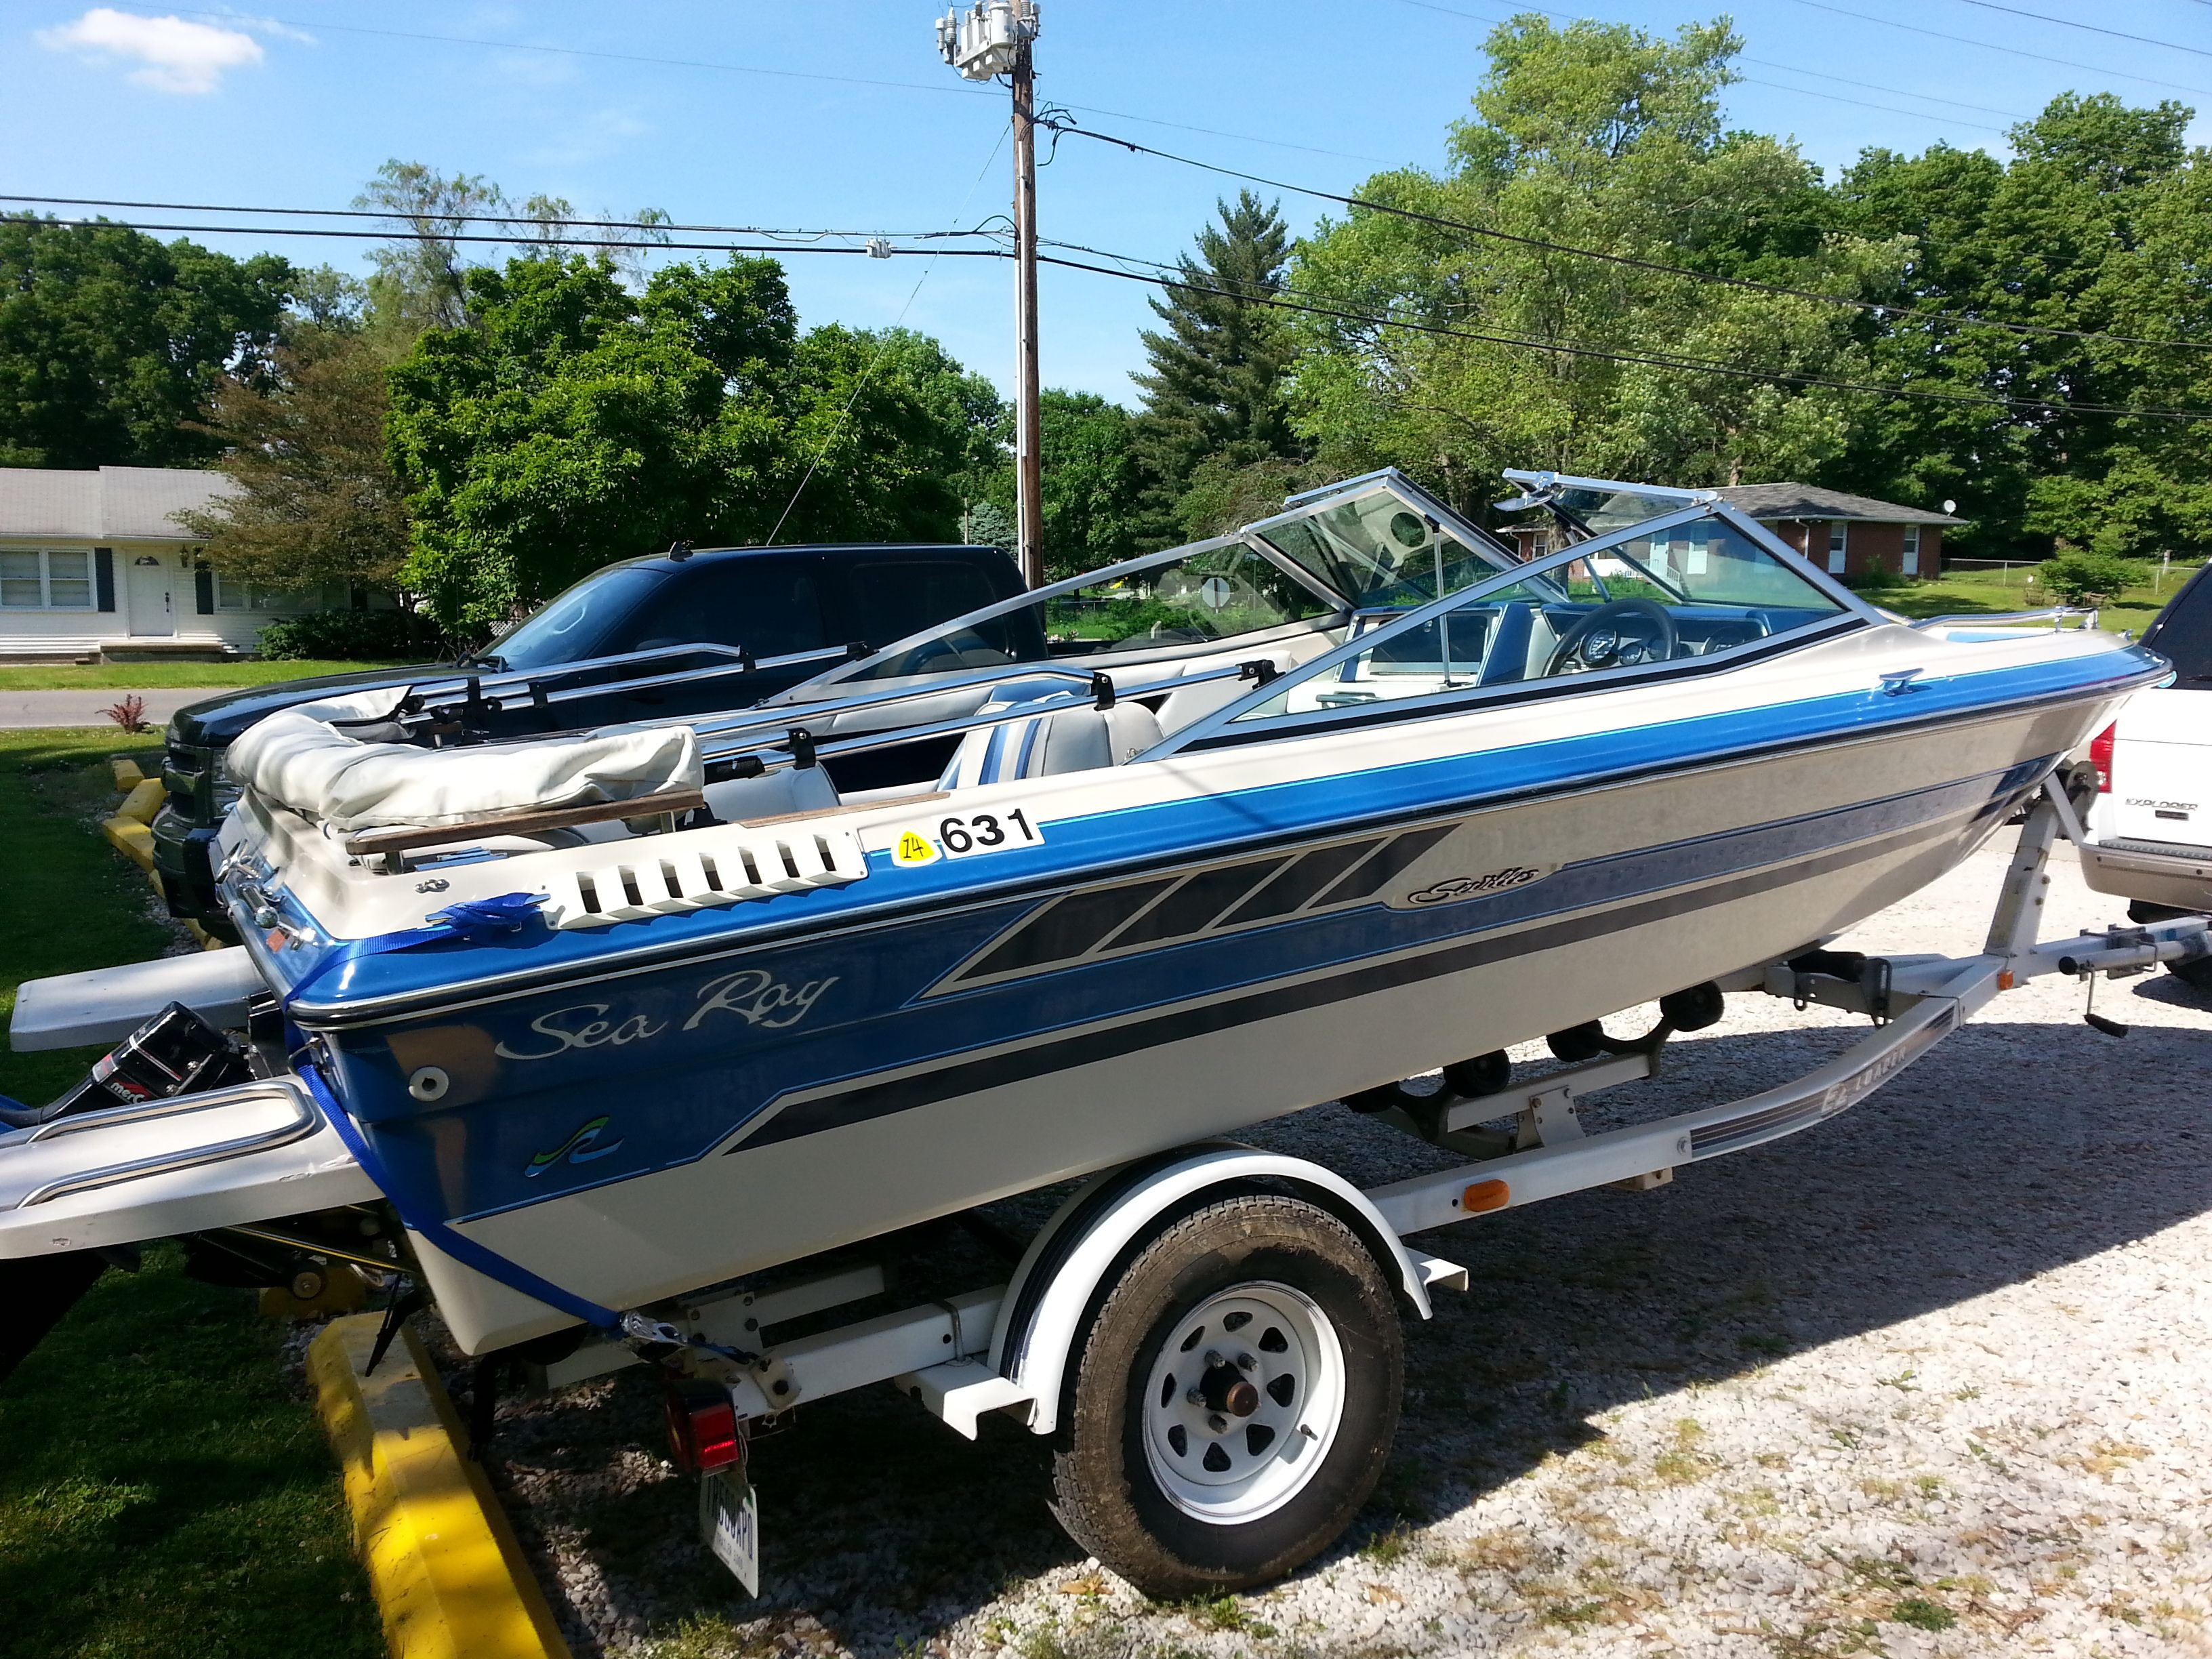 1987 Sea Ray w/ EZ Loader bumper trailer Great starter boat or smaller  family boat!!! Runs flawlessly and has plenty of power! For sale if  interested!